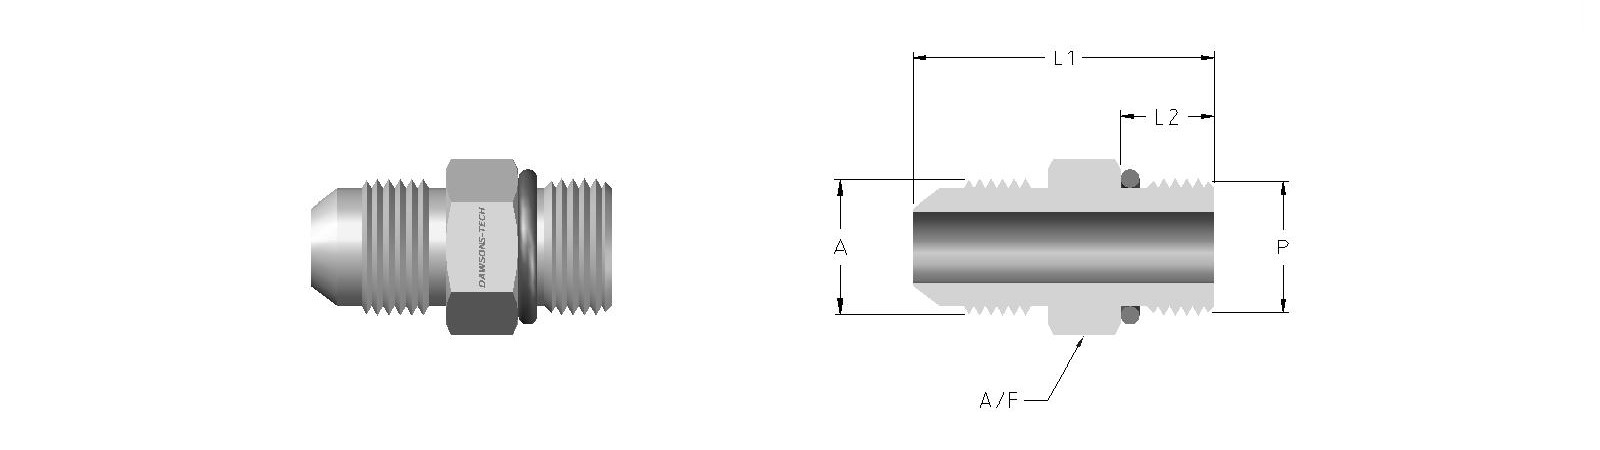 02 Male Connector (37 Flare to SAE-MS Straight Thread)